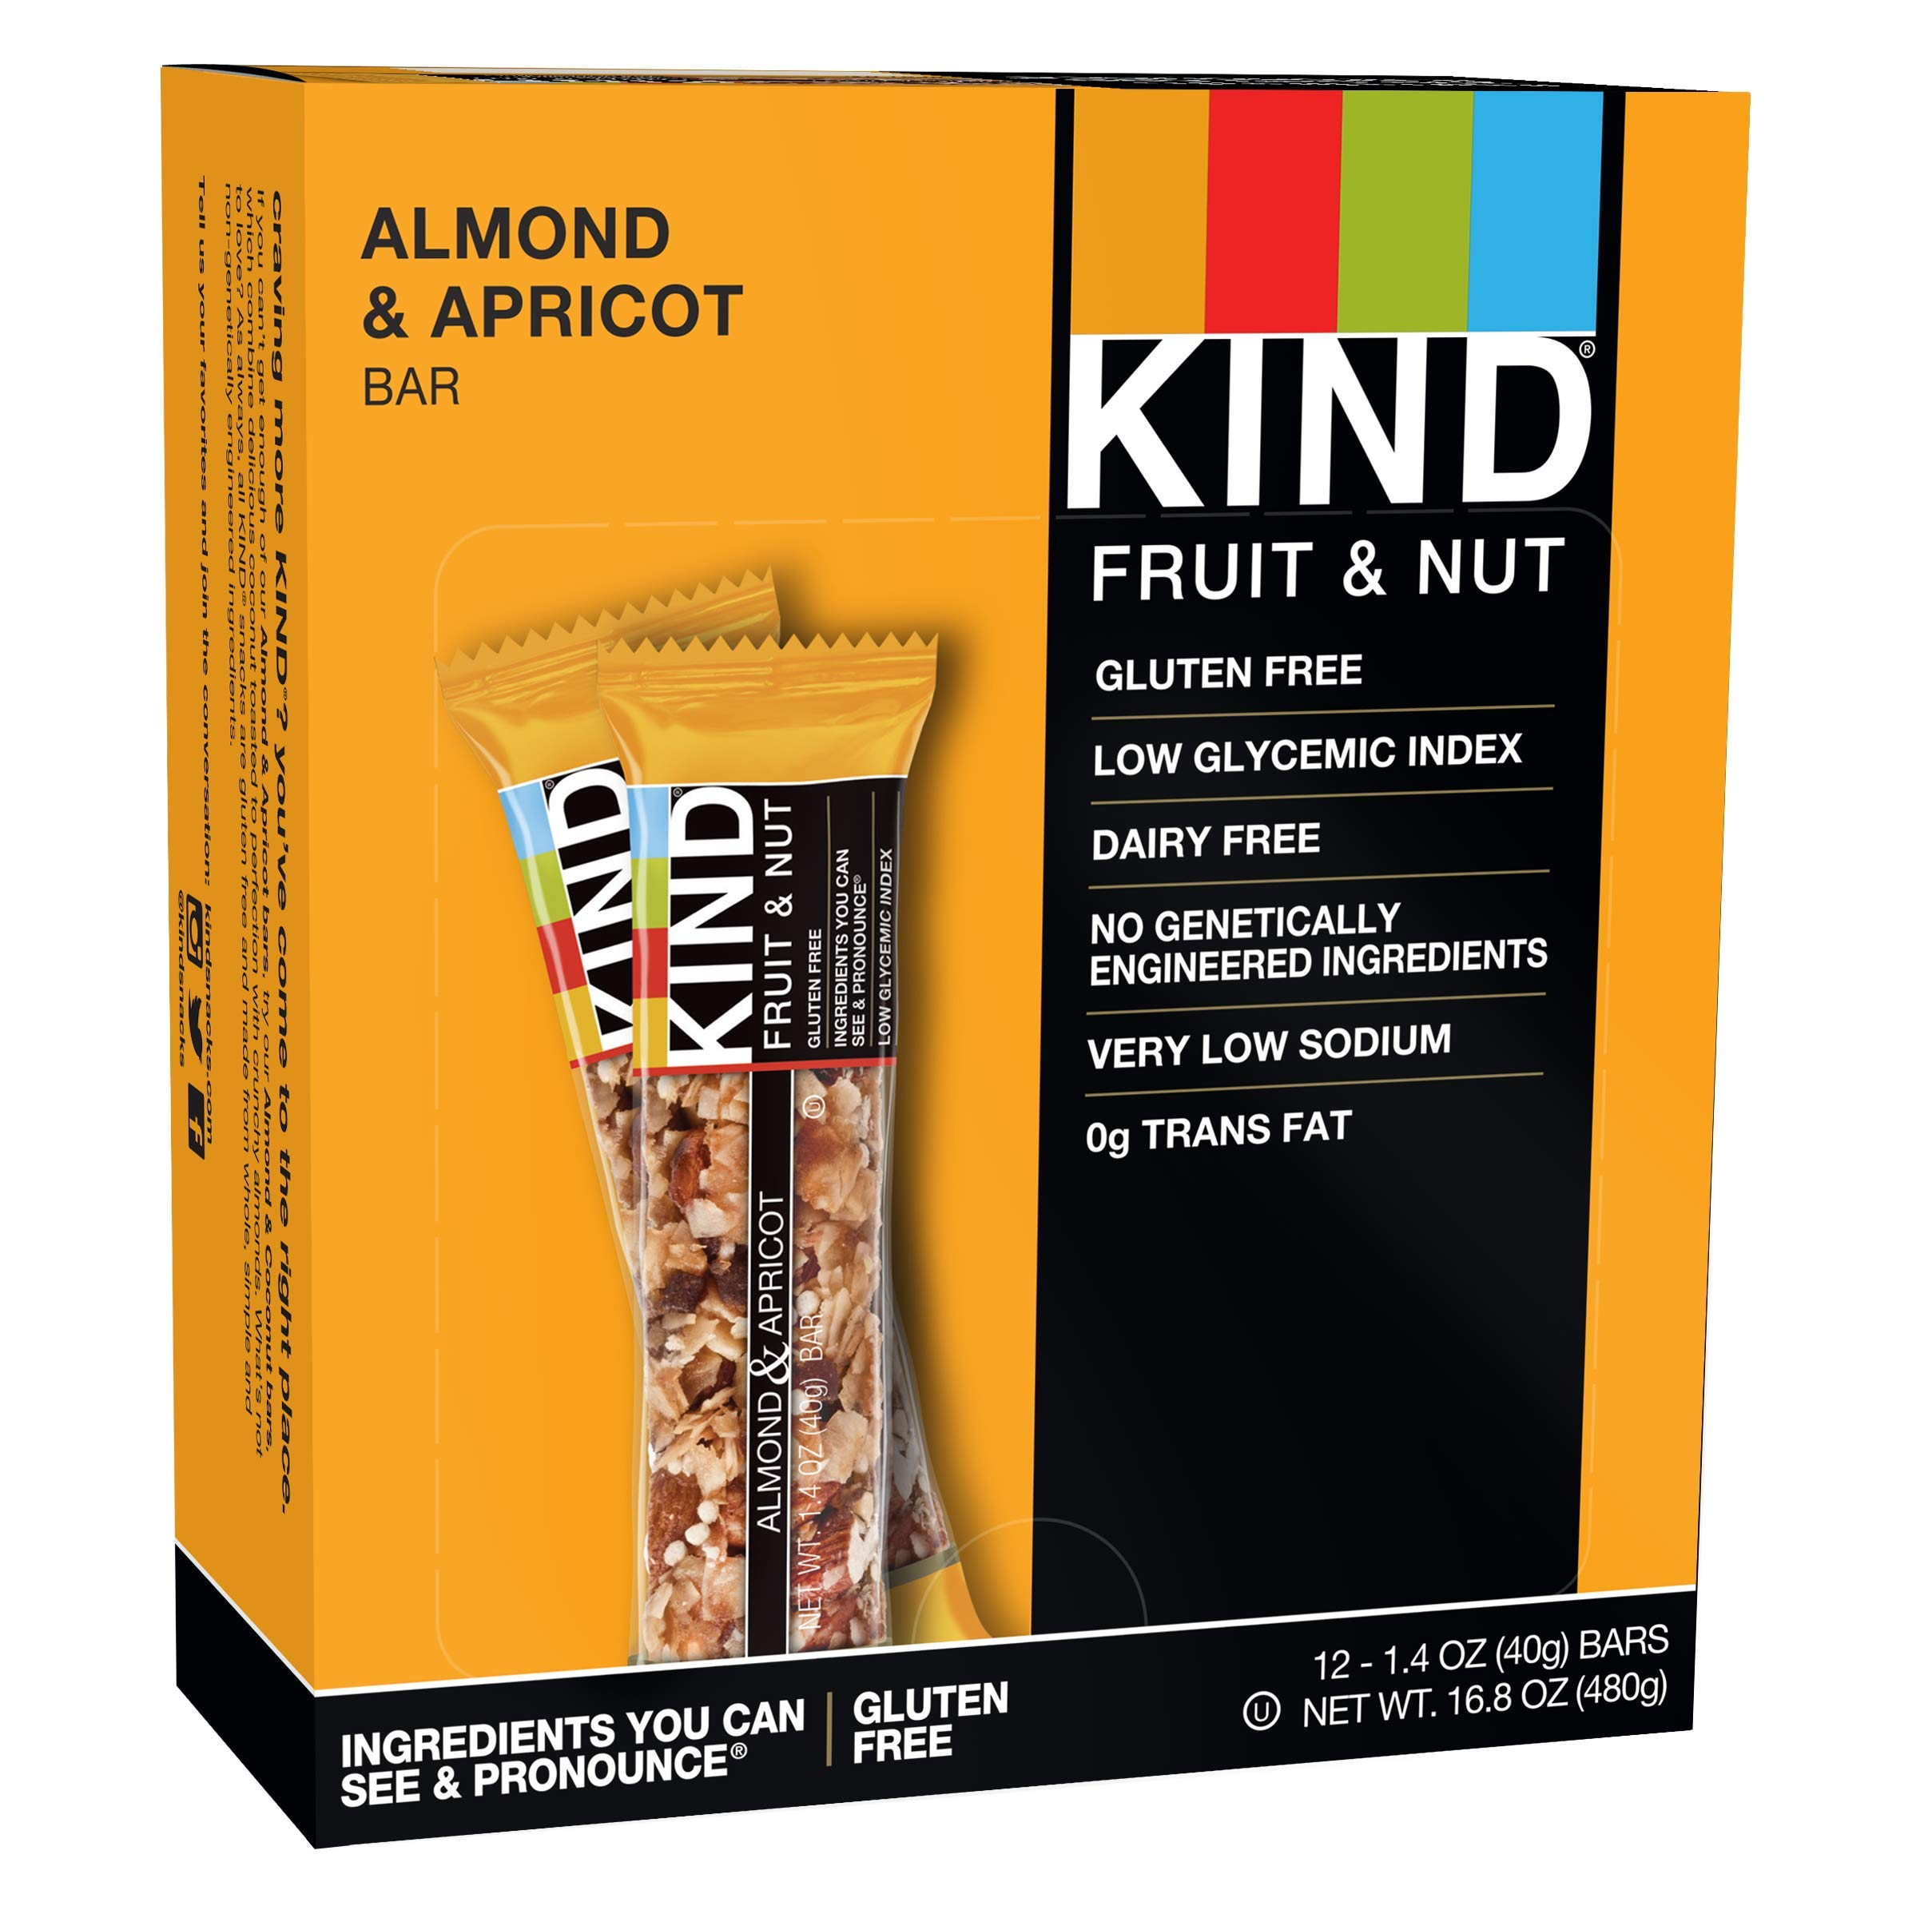 KIND Fruit & Nut Bar, Almond & Apricot, 1.4-Ounce Bars (Pack of 12) by KIND